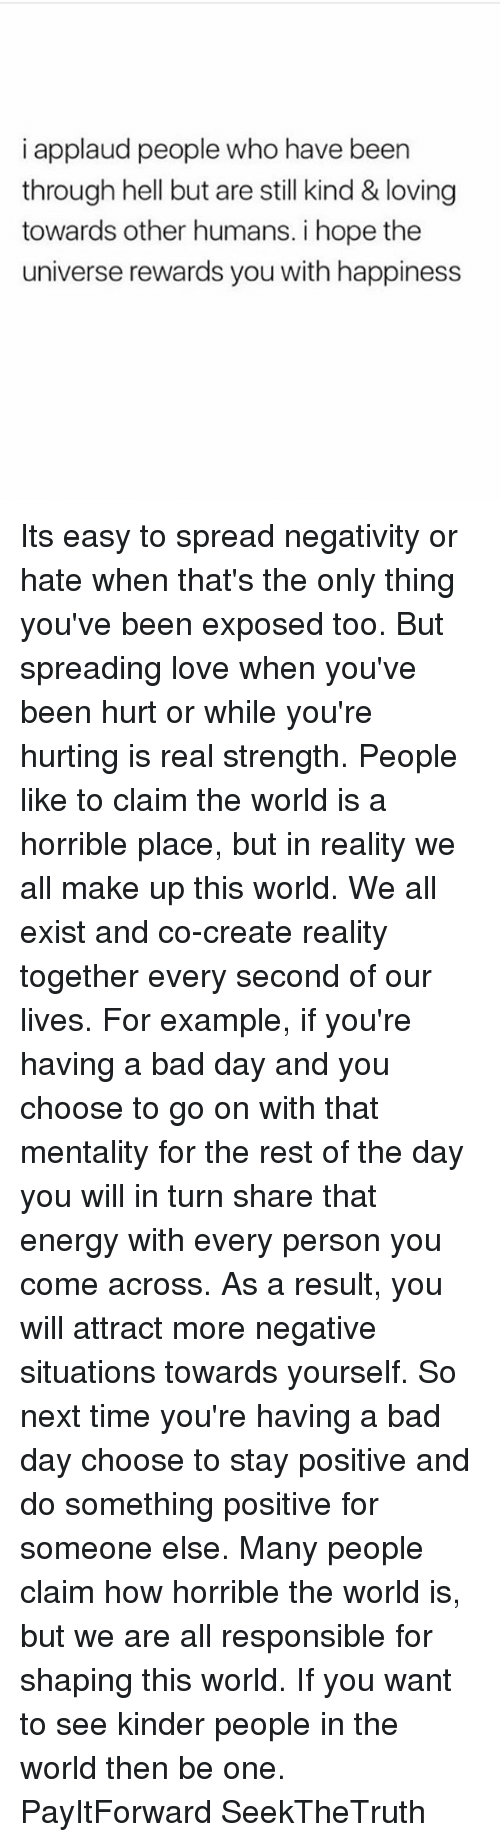 Hurtfully: i applaud people who have been  through hell but are still kind & loving  towards other humans. i hope the  universe rewards you with happiness Its easy to spread negativity or hate when that's the only thing you've been exposed too. But spreading love when you've been hurt or while you're hurting is real strength. People like to claim the world is a horrible place, but in reality we all make up this world. We all exist and co-create reality together every second of our lives. For example, if you're having a bad day and you choose to go on with that mentality for the rest of the day you will in turn share that energy with every person you come across. As a result, you will attract more negative situations towards yourself. So next time you're having a bad day choose to stay positive and do something positive for someone else. Many people claim how horrible the world is, but we are all responsible for shaping this world. If you want to see kinder people in the world then be one. PayItForward SeekTheTruth